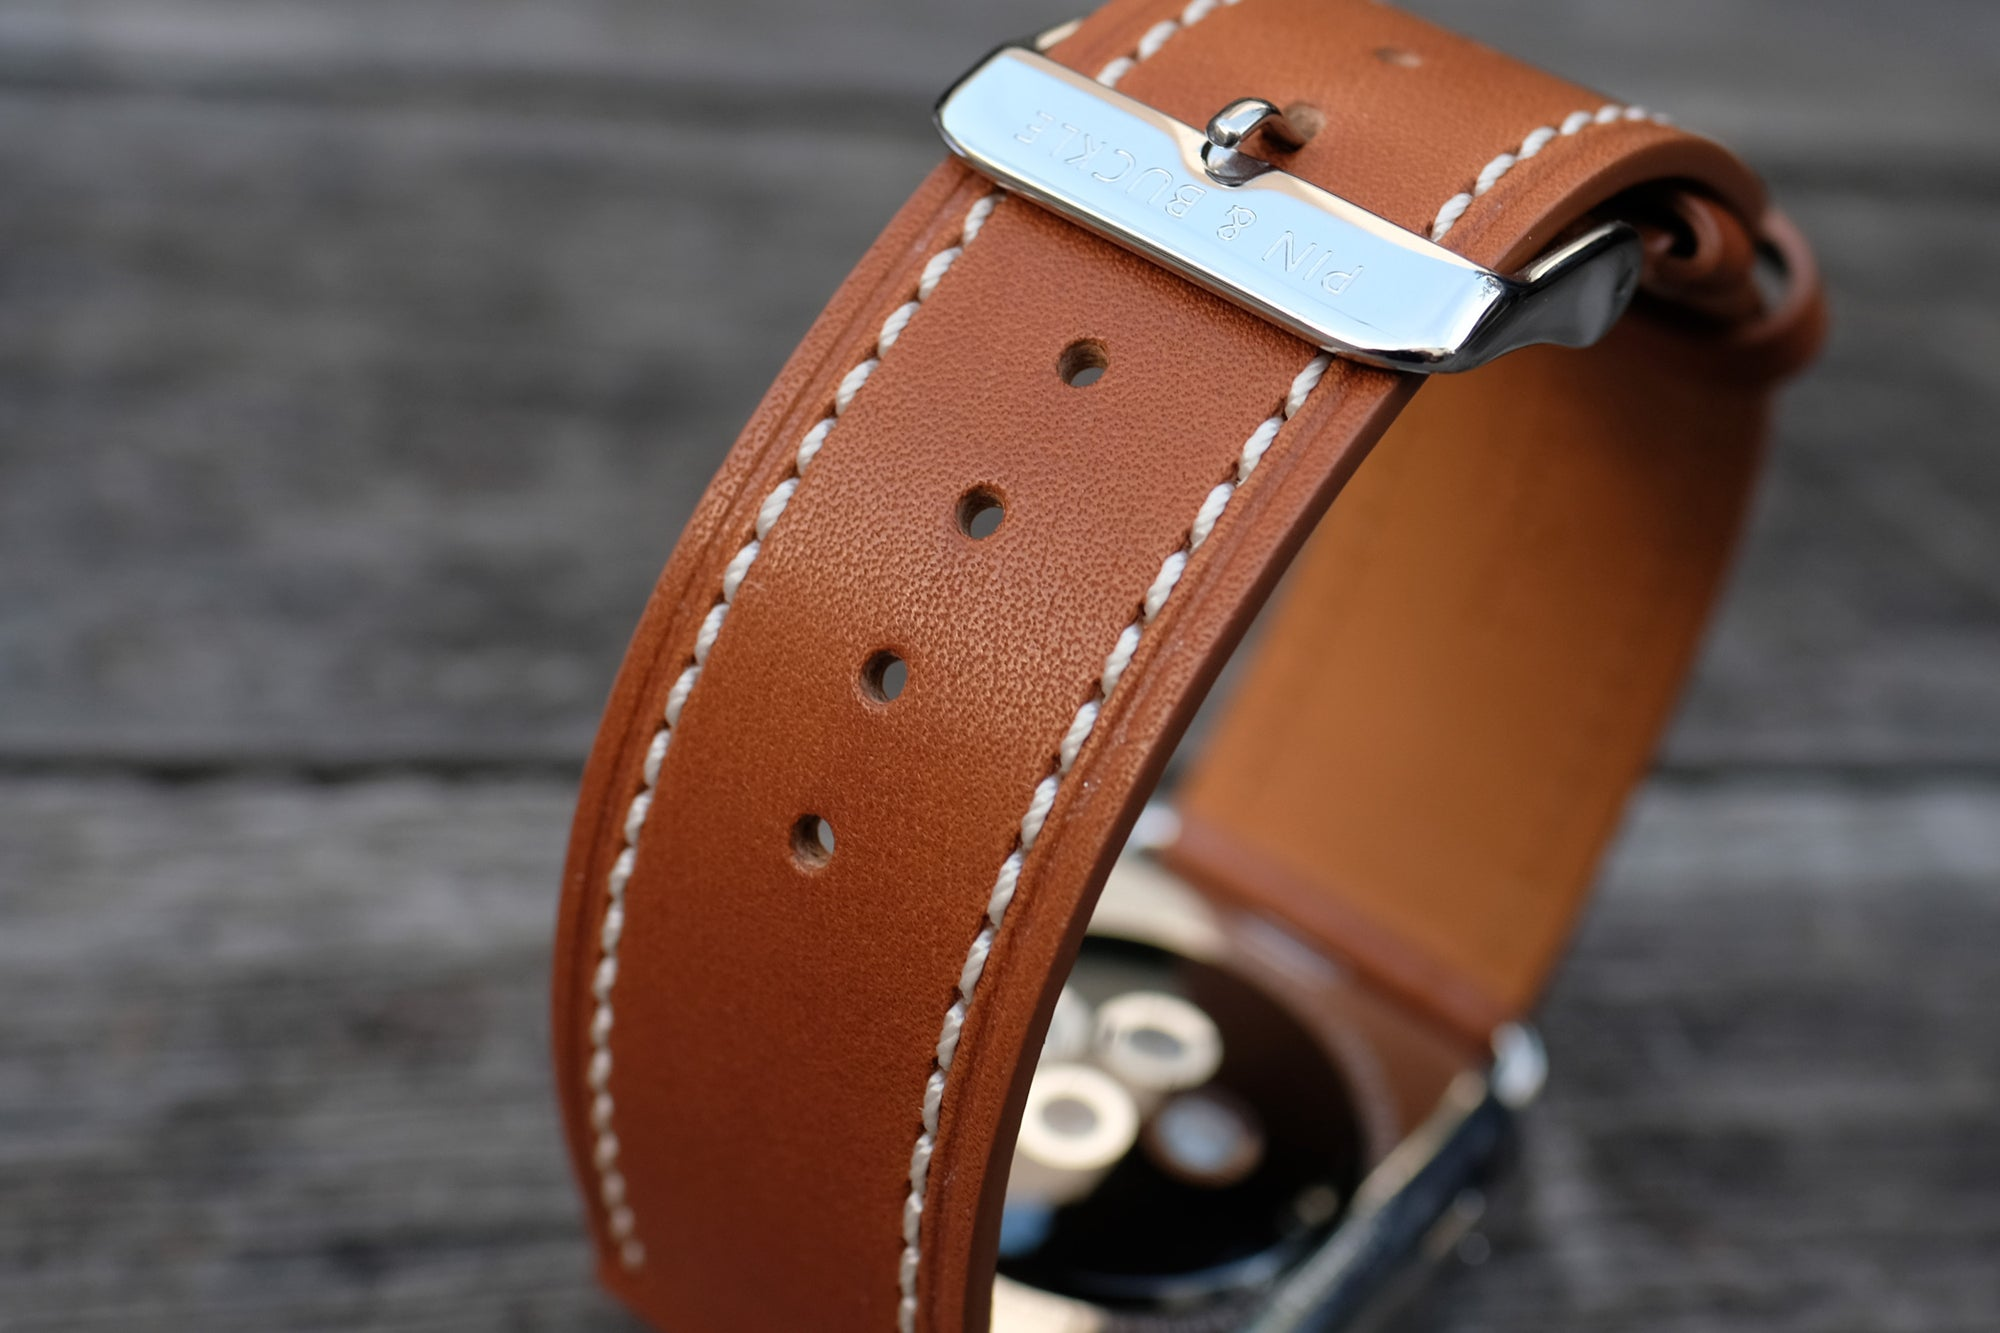 Barenia Leather Apple Watch Bands by Pin & Buckle - Full-Grain Barenia Leather - Tan